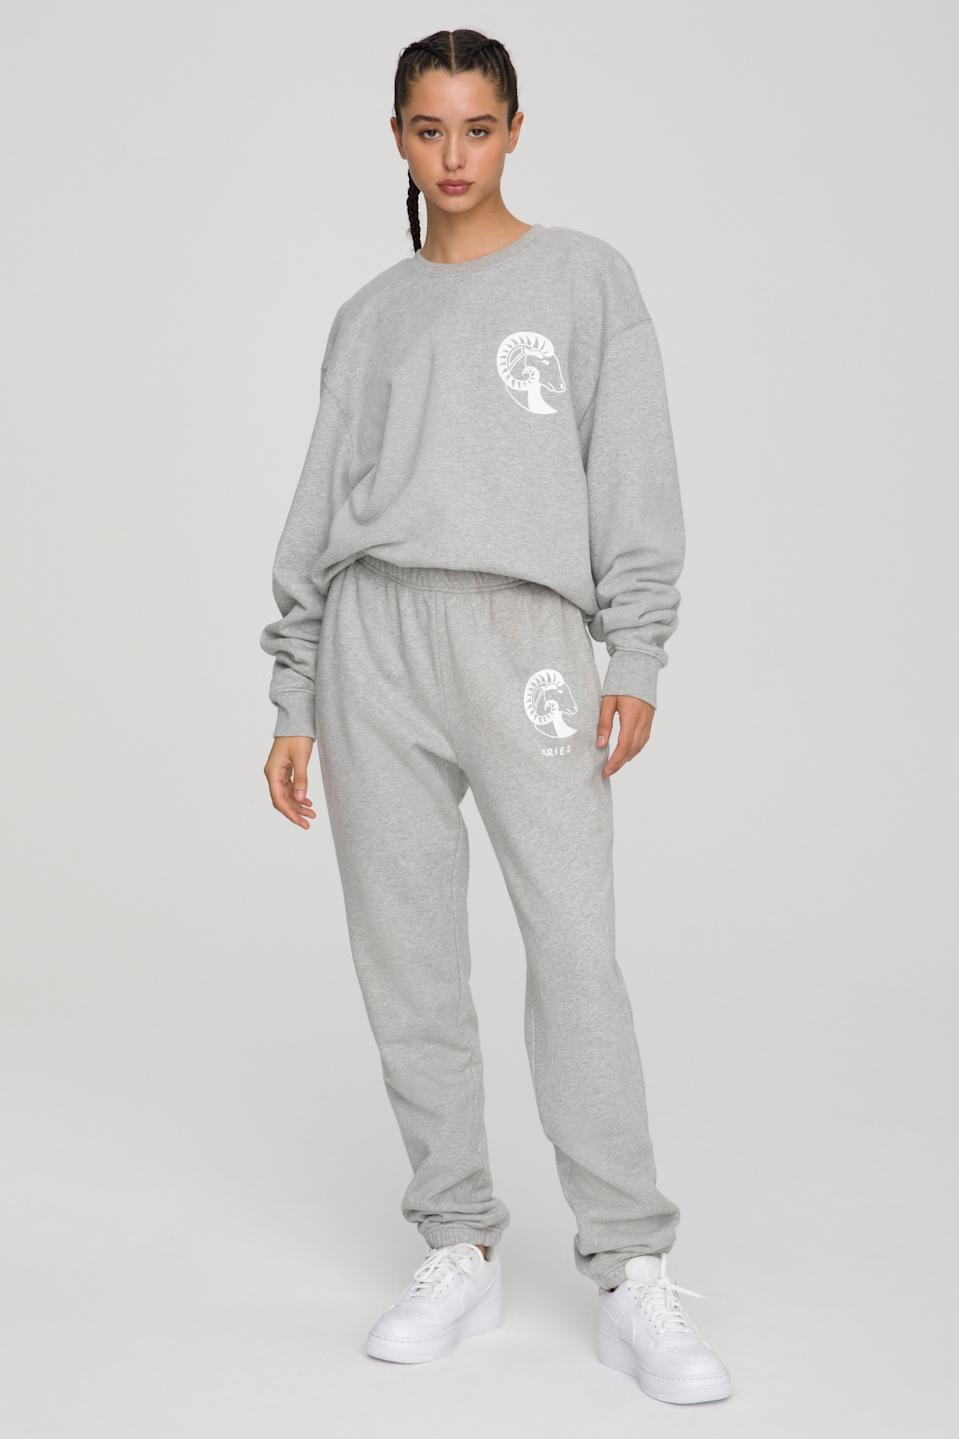 Koutrney Kardashian posed in the Aries Boyfriend Sweatshirt ($124) and Sweatpants  ($105) combo from Good American.